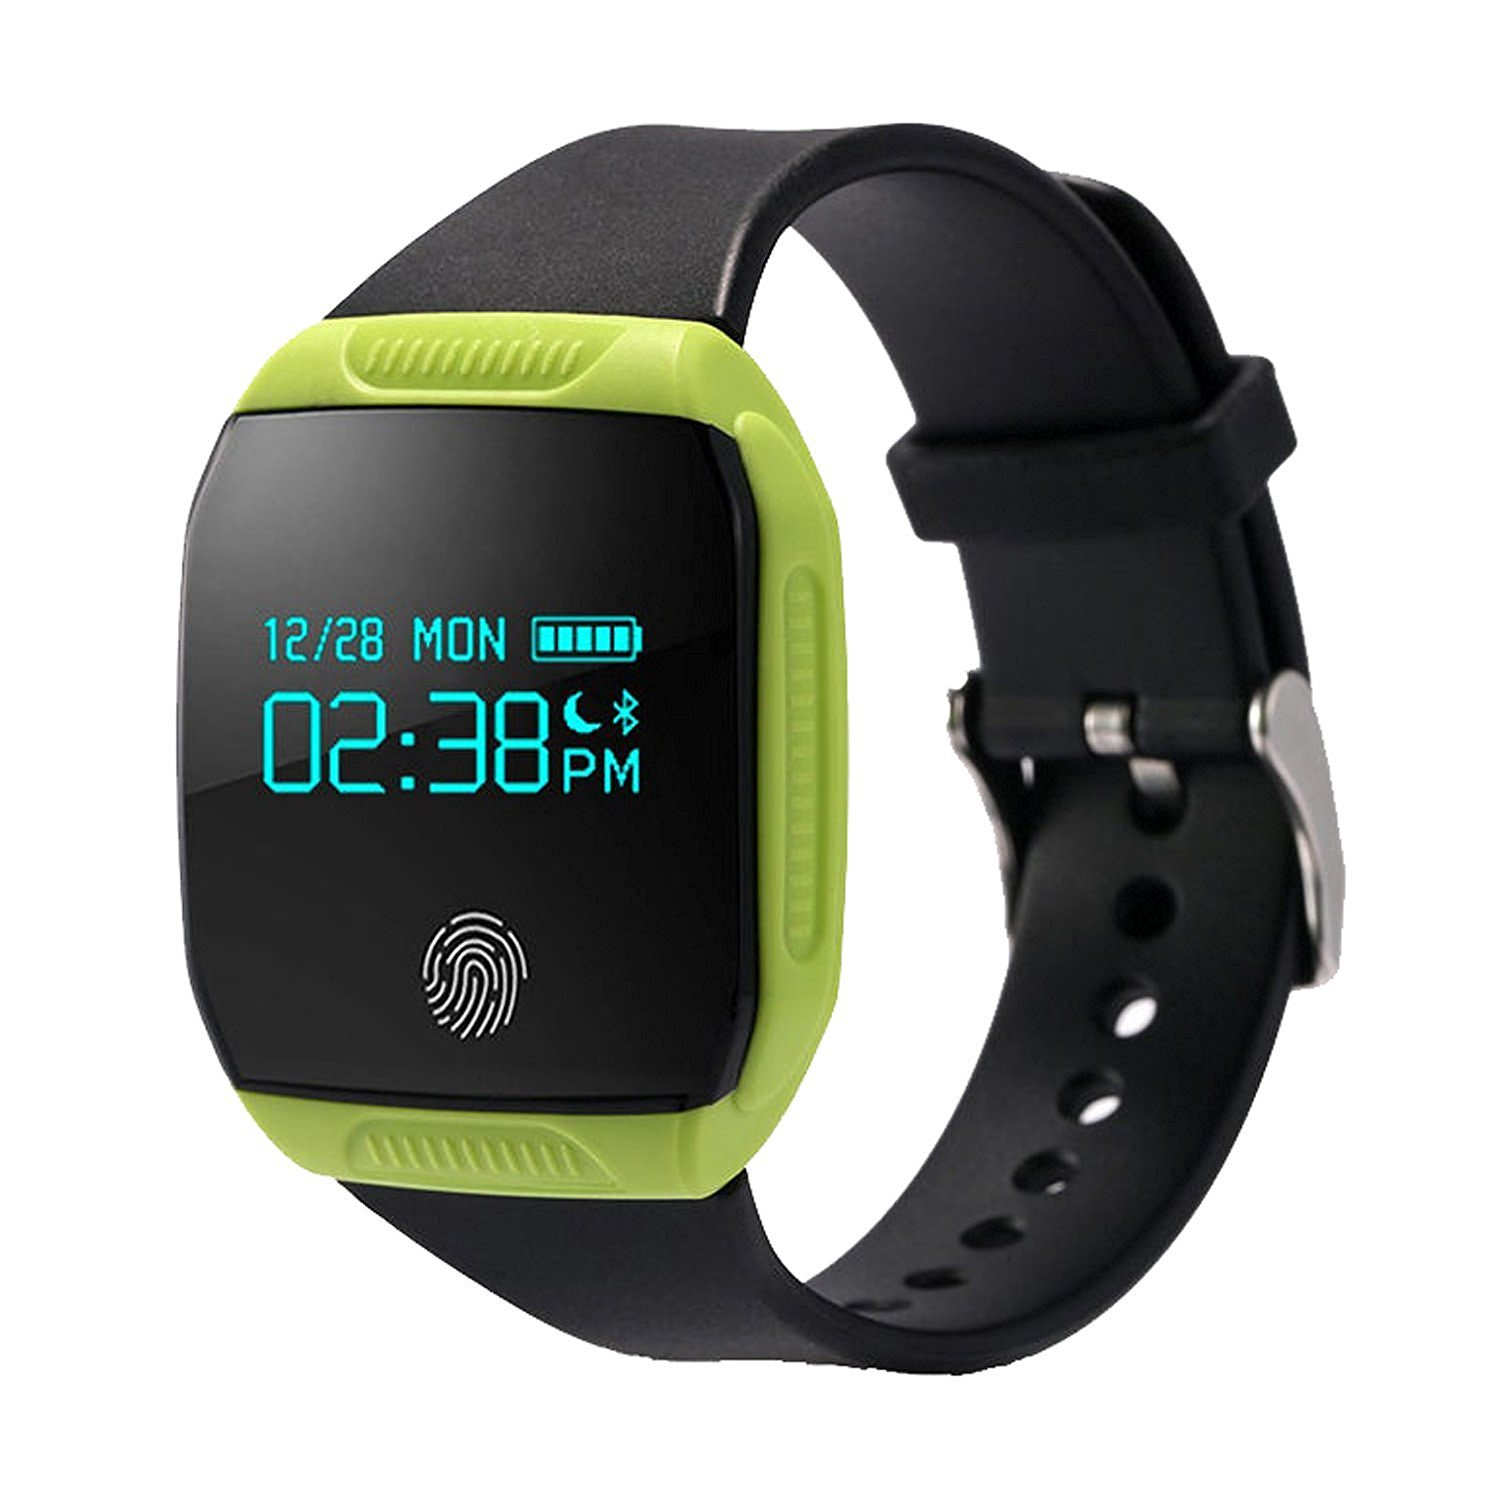 trackers out tracking tracker best finest overall watches now the fitness